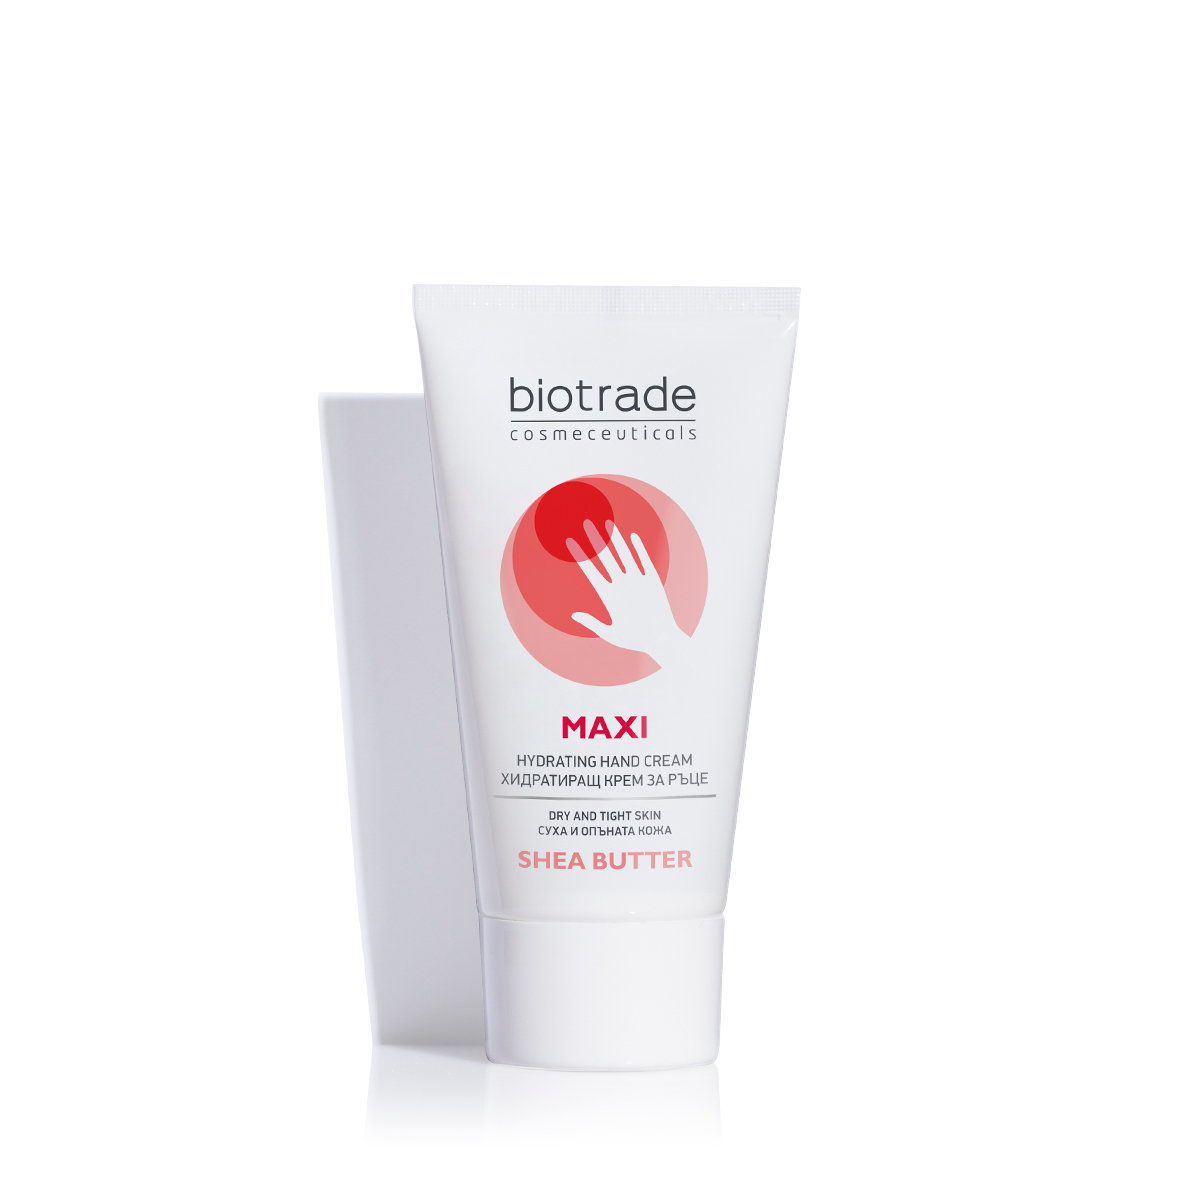 Maxi Hydrating Hand Cream with Shea Butter